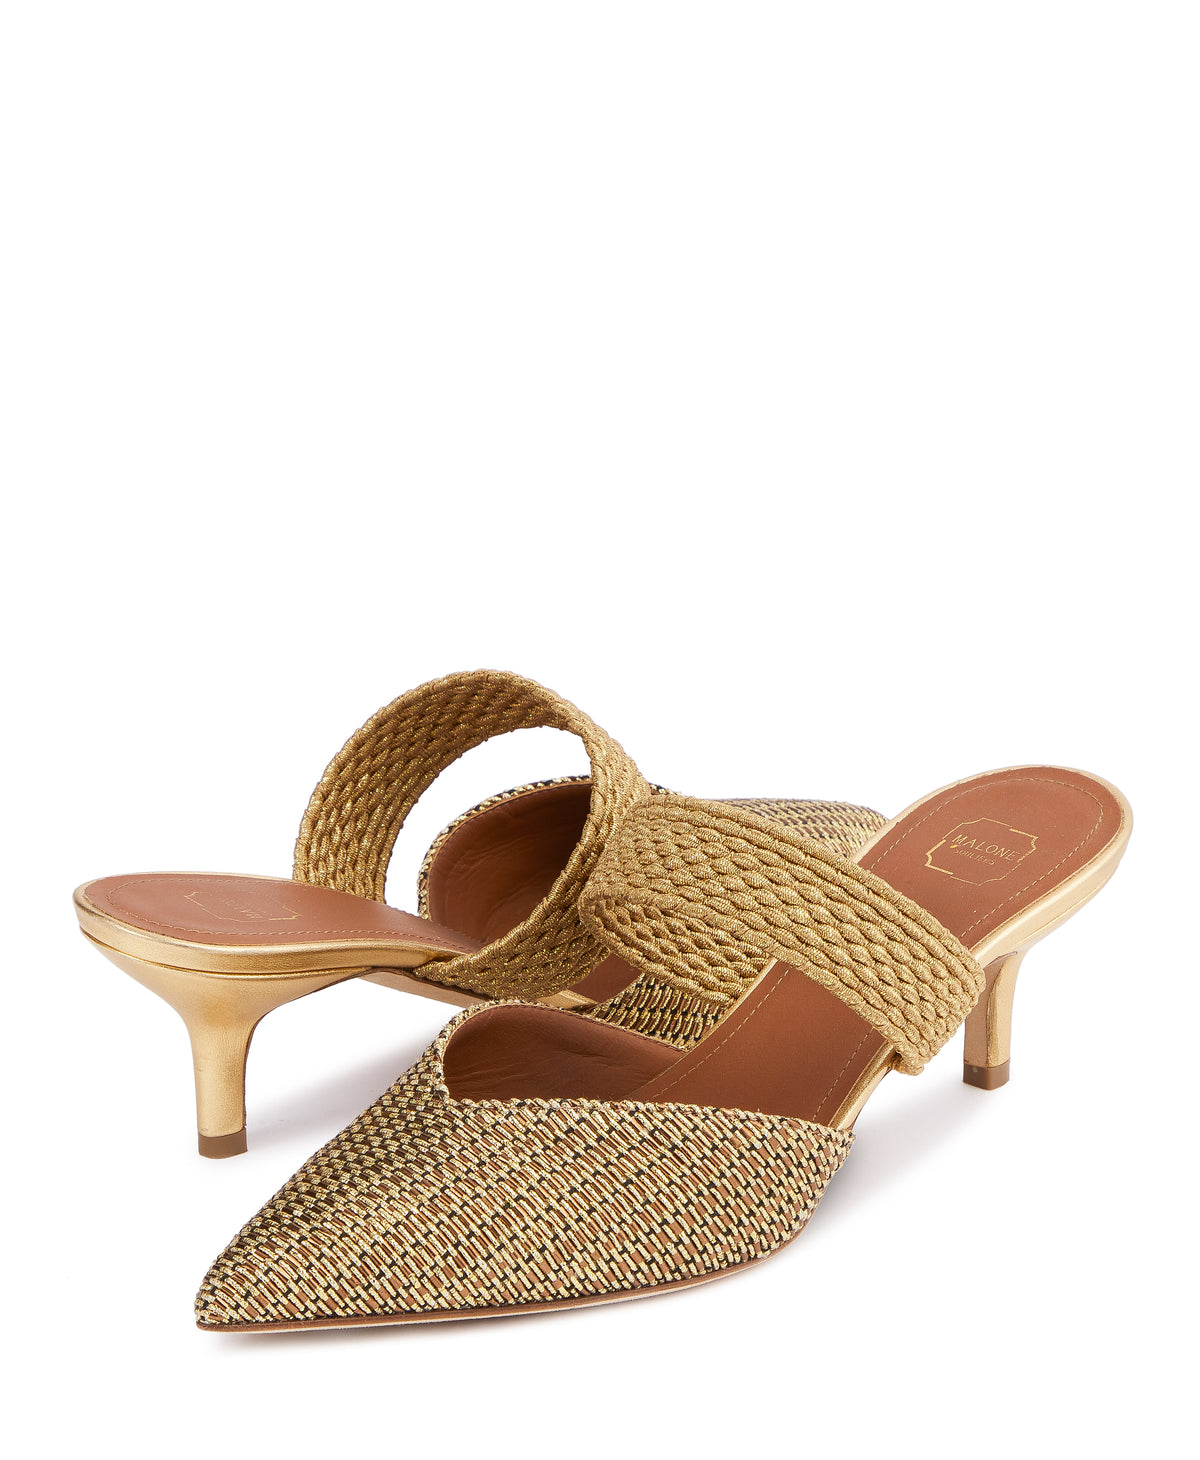 Women's Gold Lurex Slip-On Mules With Kitten Heel Malone Souliers